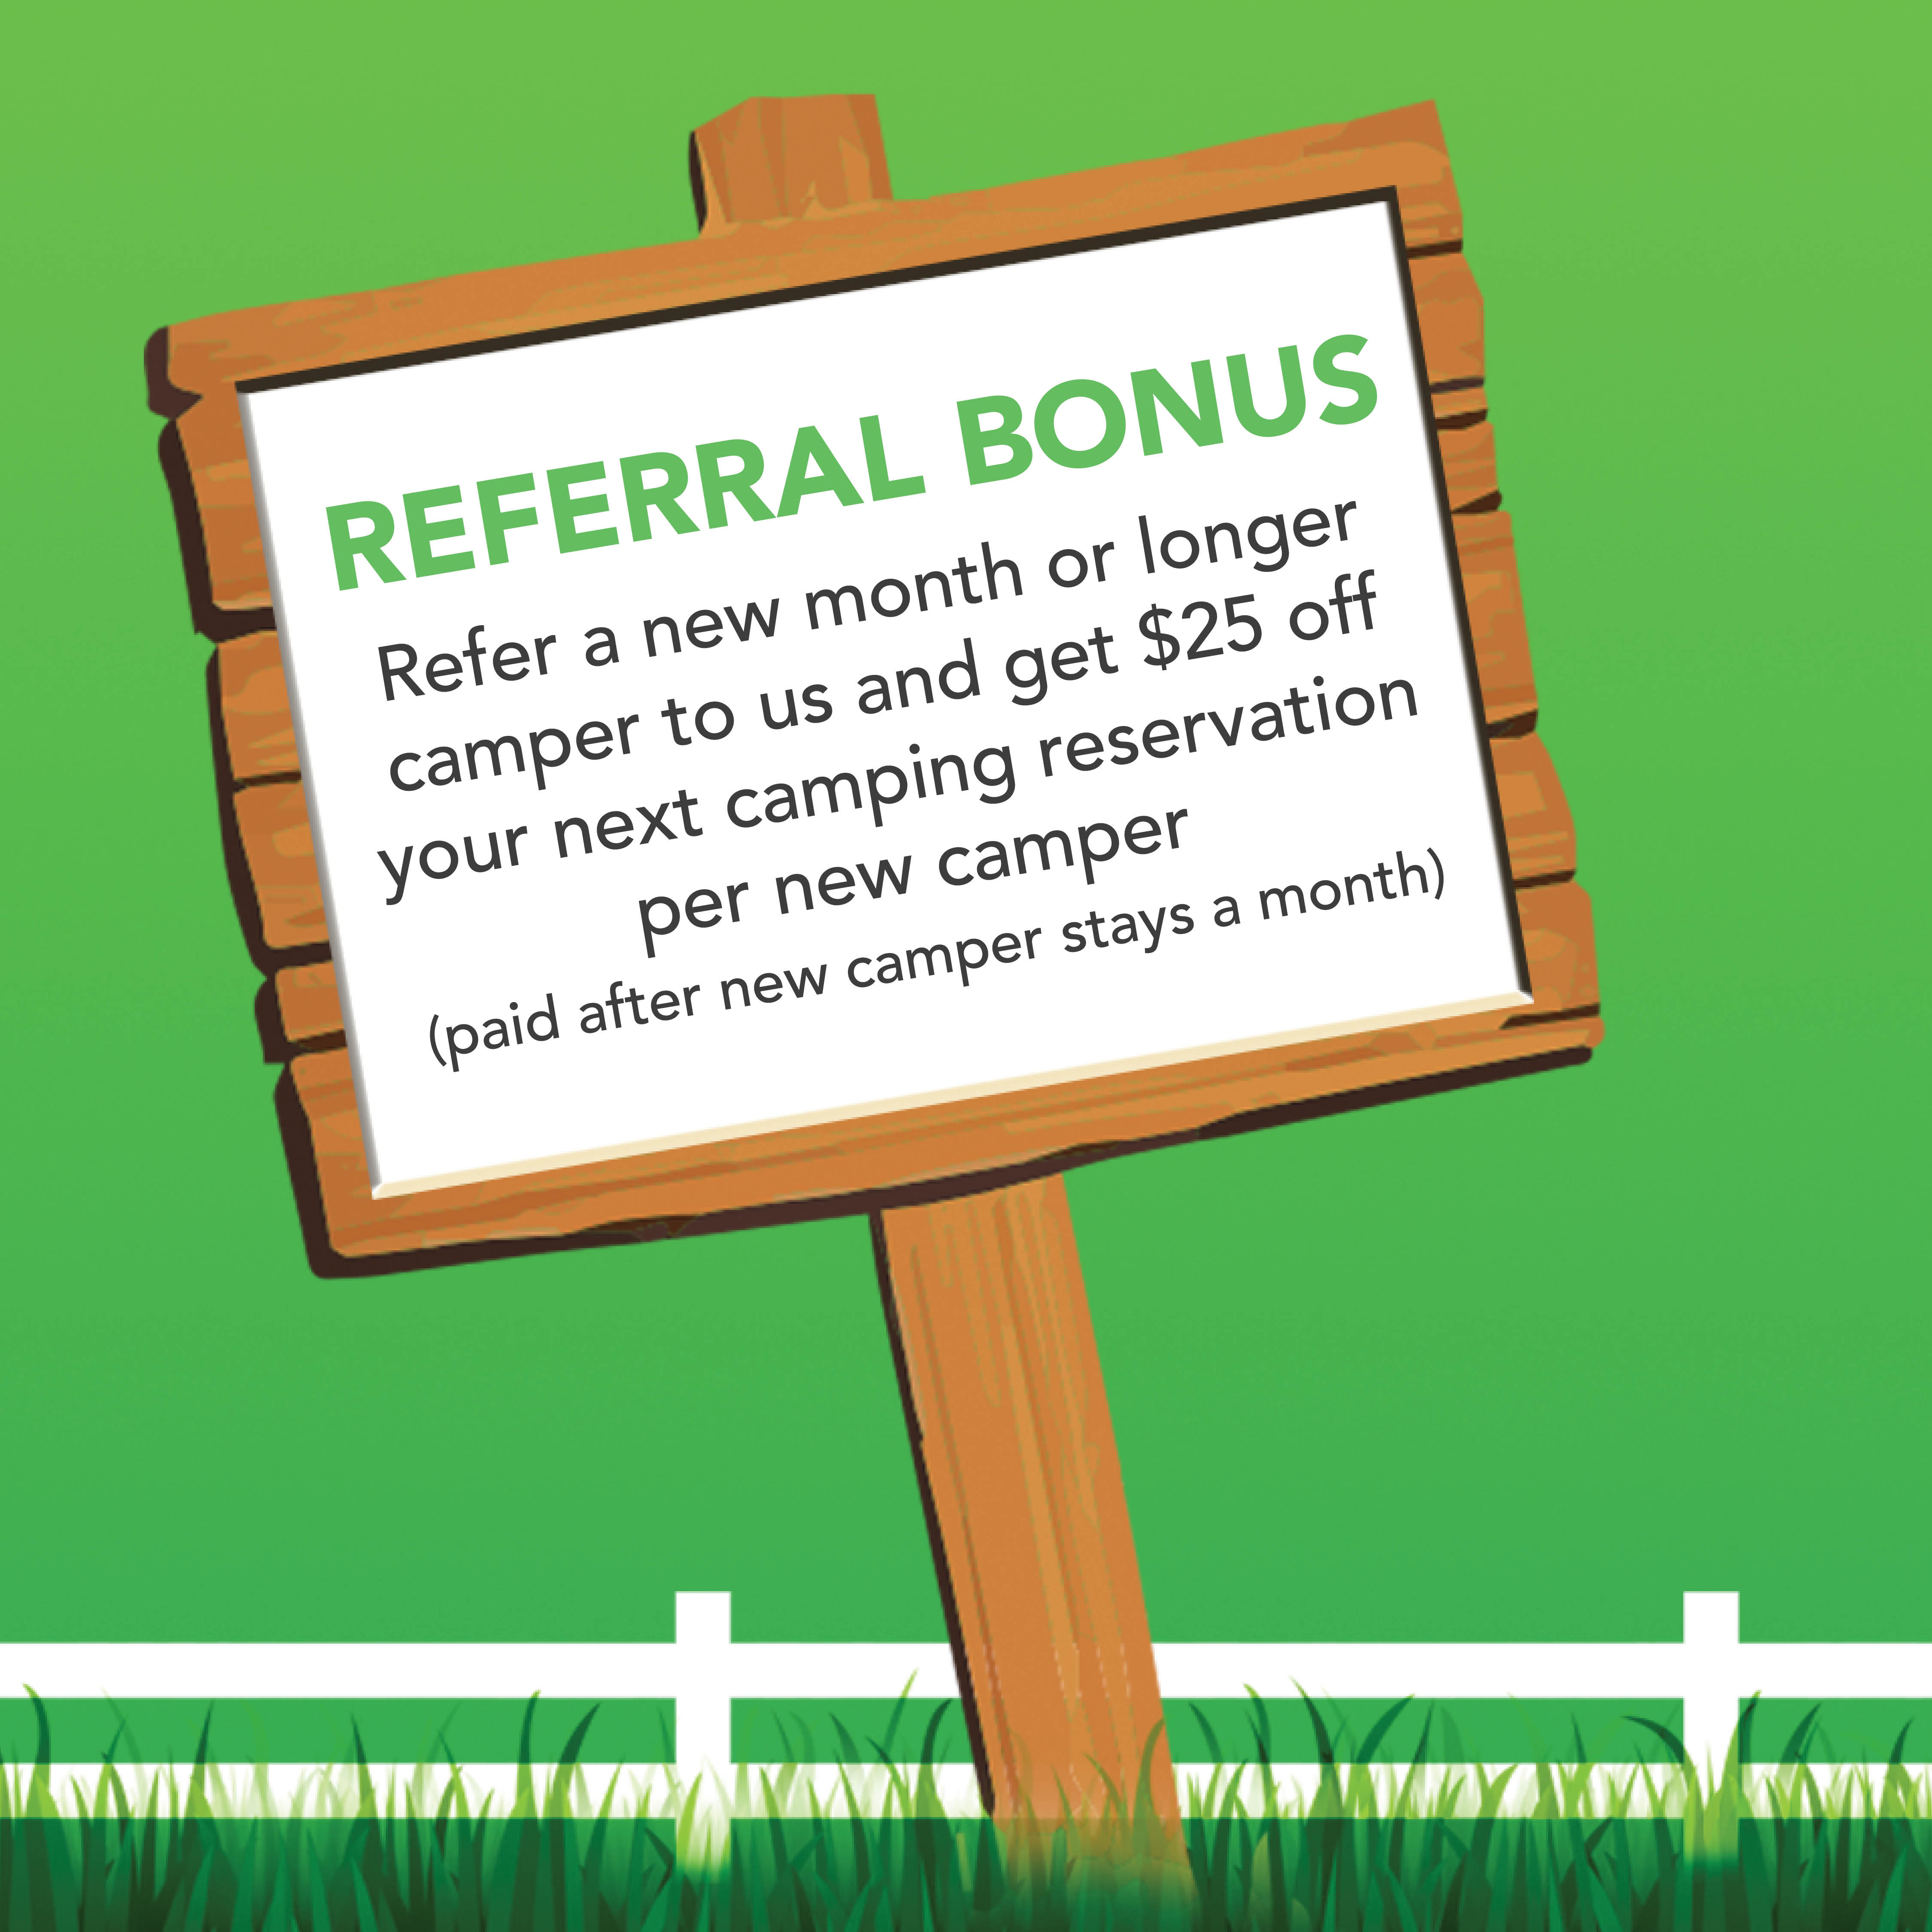 2020 LEC Longterm camping Website referral bonus graphic